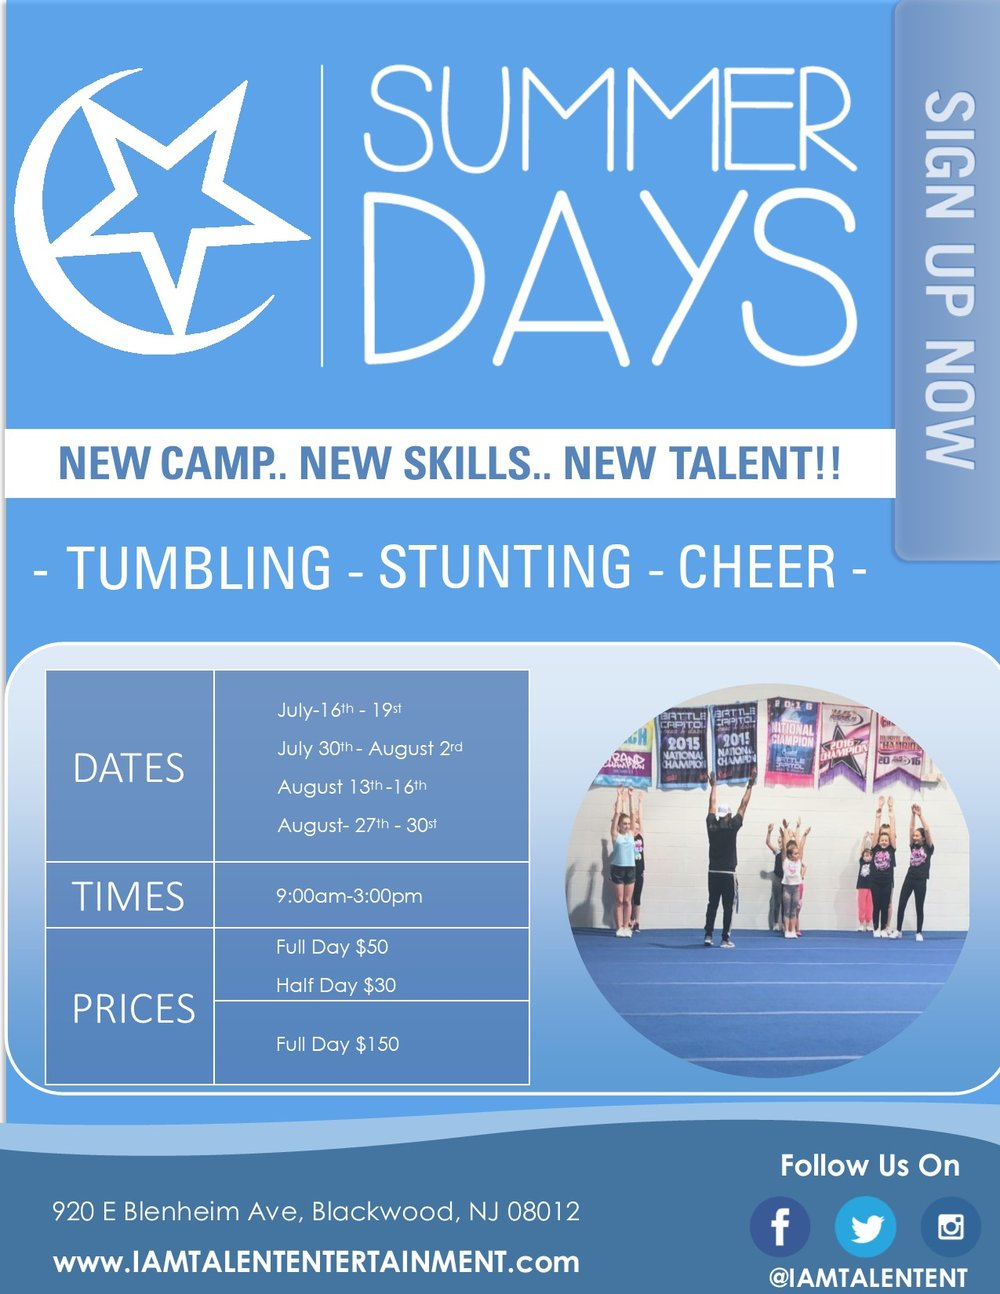 NEED NEW SKILLS?    CHECK OUT OURBRAND NEW SUMMER CAMP! -